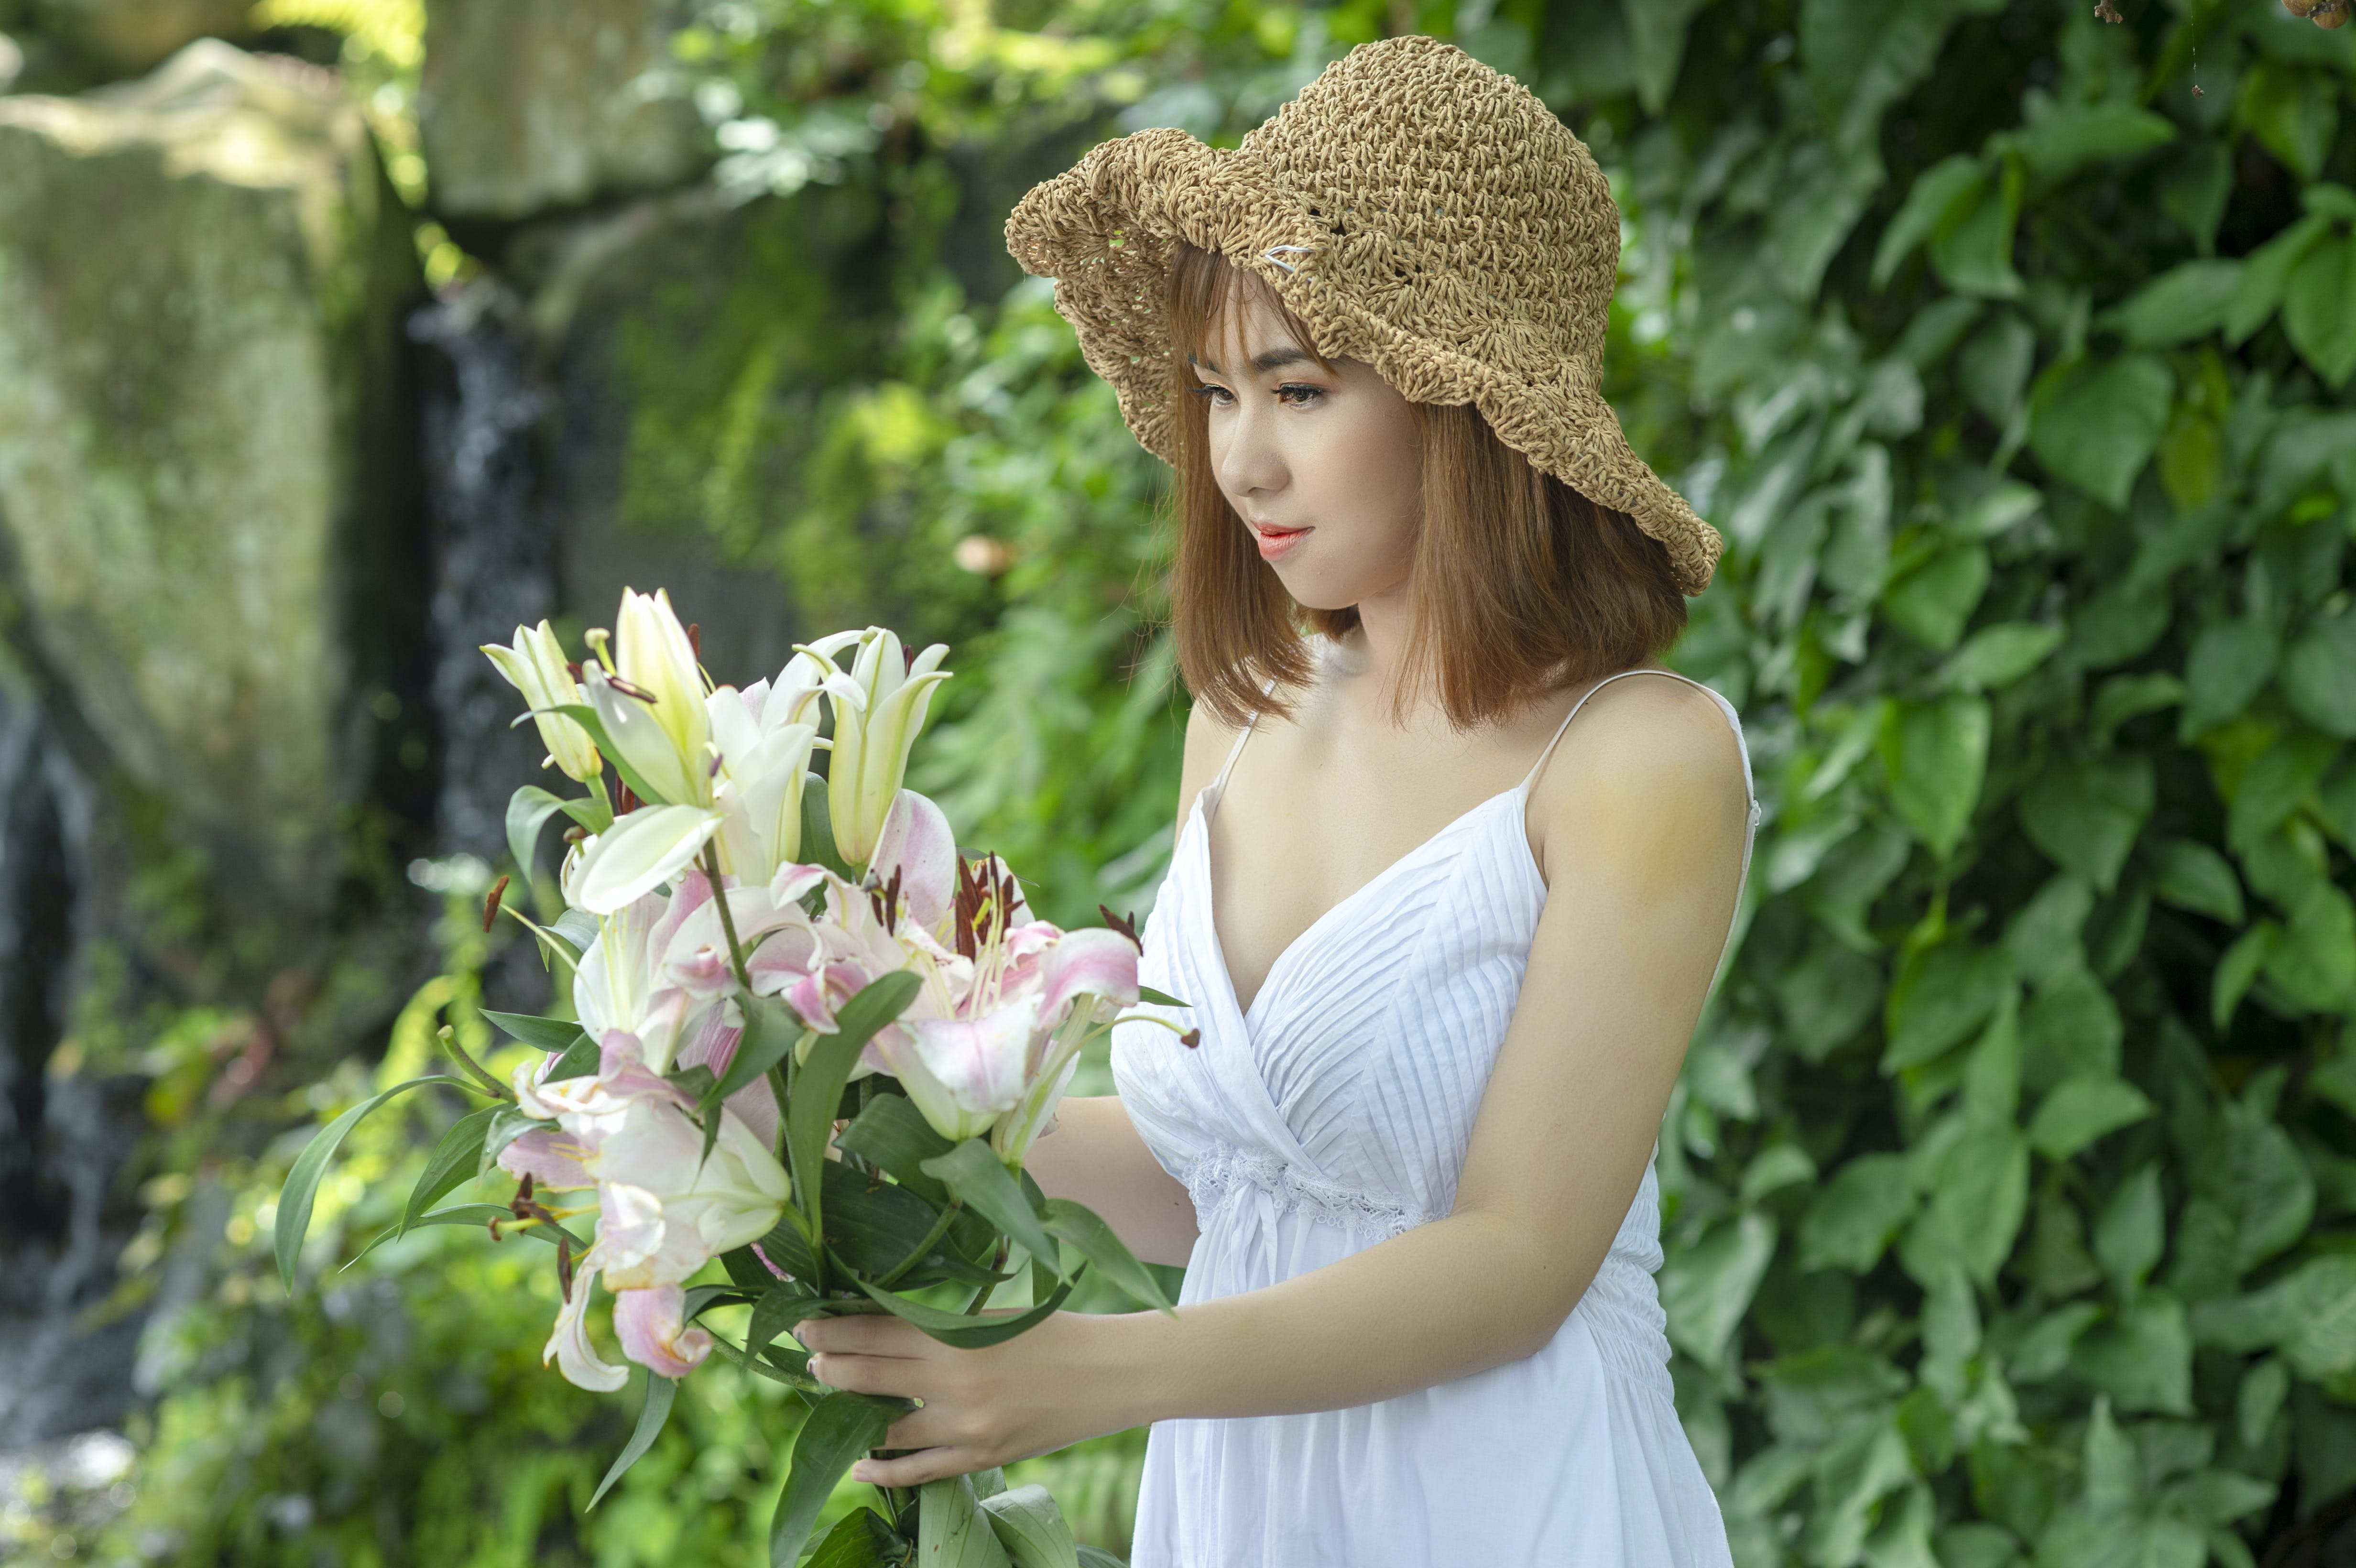 Woman Holding White and Pink Lily Flowers Near Green Leafed Plants